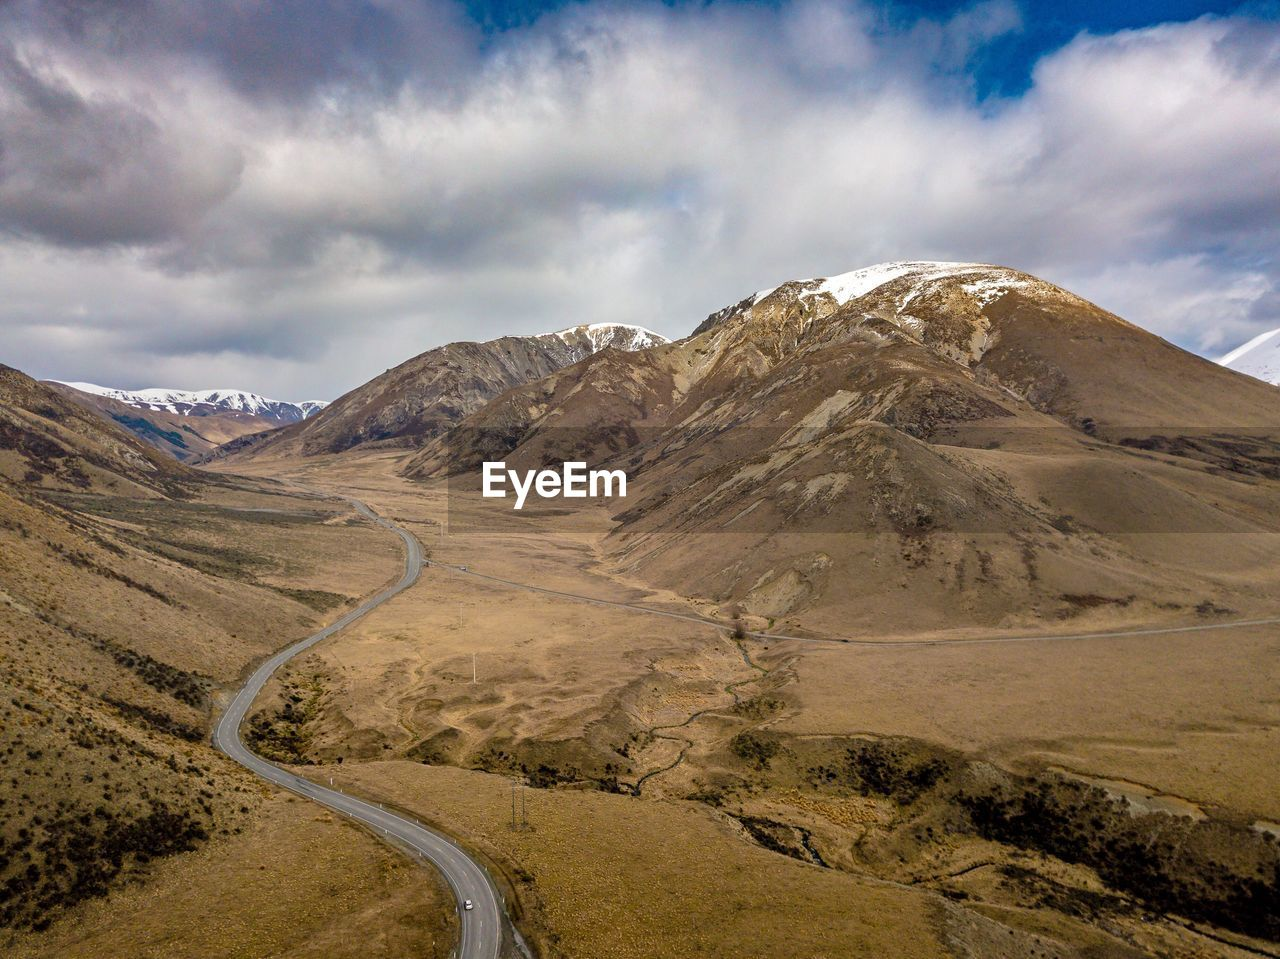 landscape, sky, mountain, cloud - sky, beauty in nature, nature, road, day, outdoors, scenics, curve, mountain range, no people